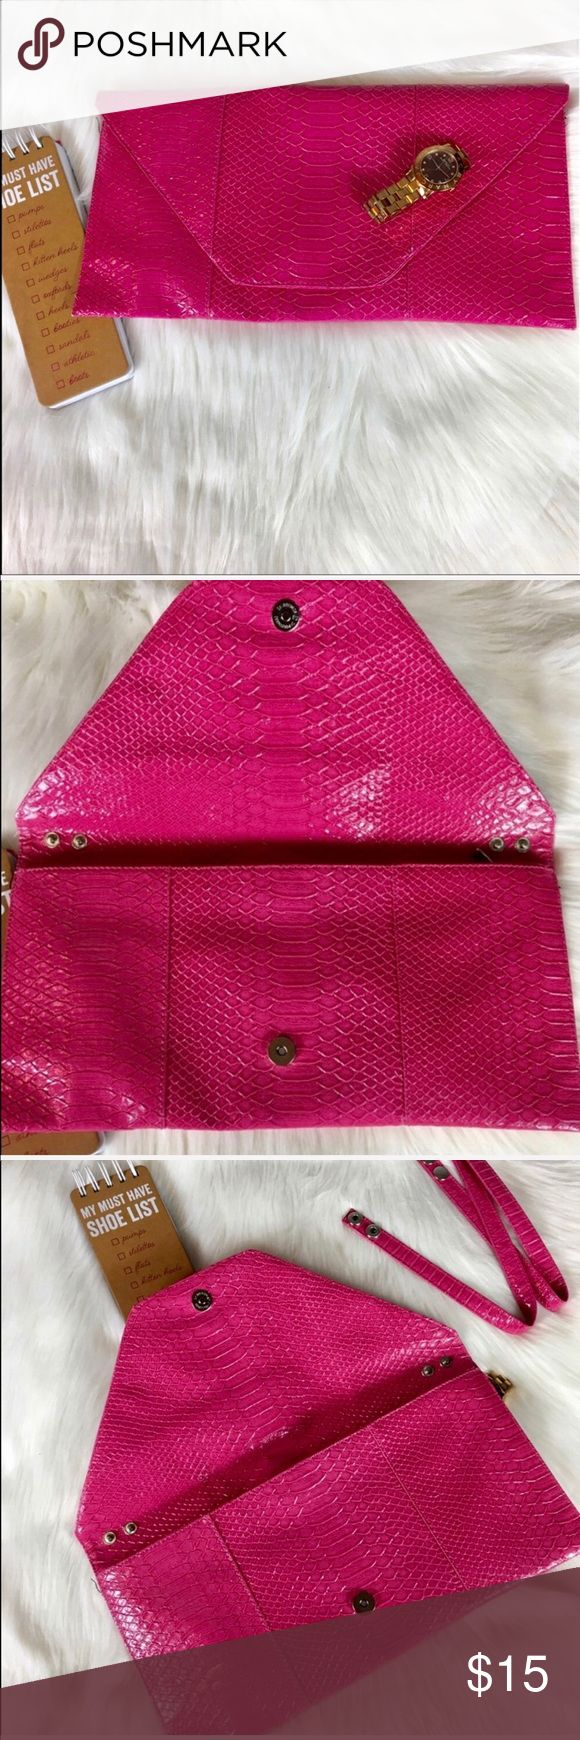 """Pink Python Print Envelope Clutch Beautiful pink croc embossed XL clutch or purse. This bag is so cute and a dope addition to any closet. Comes with a detachable strap. In excellent condition. Dimensions """"7.5h x14""""l Make this ☝🏾️treasure yours today ☺️. Don't be scared to make an offer, you never know unless you try. Bundle multiple items for the best savings. Pay one low price for shipping 🎁!   Thanks for stepping into Coco's Closet 😘 Bags Clutches & Wristlets"""